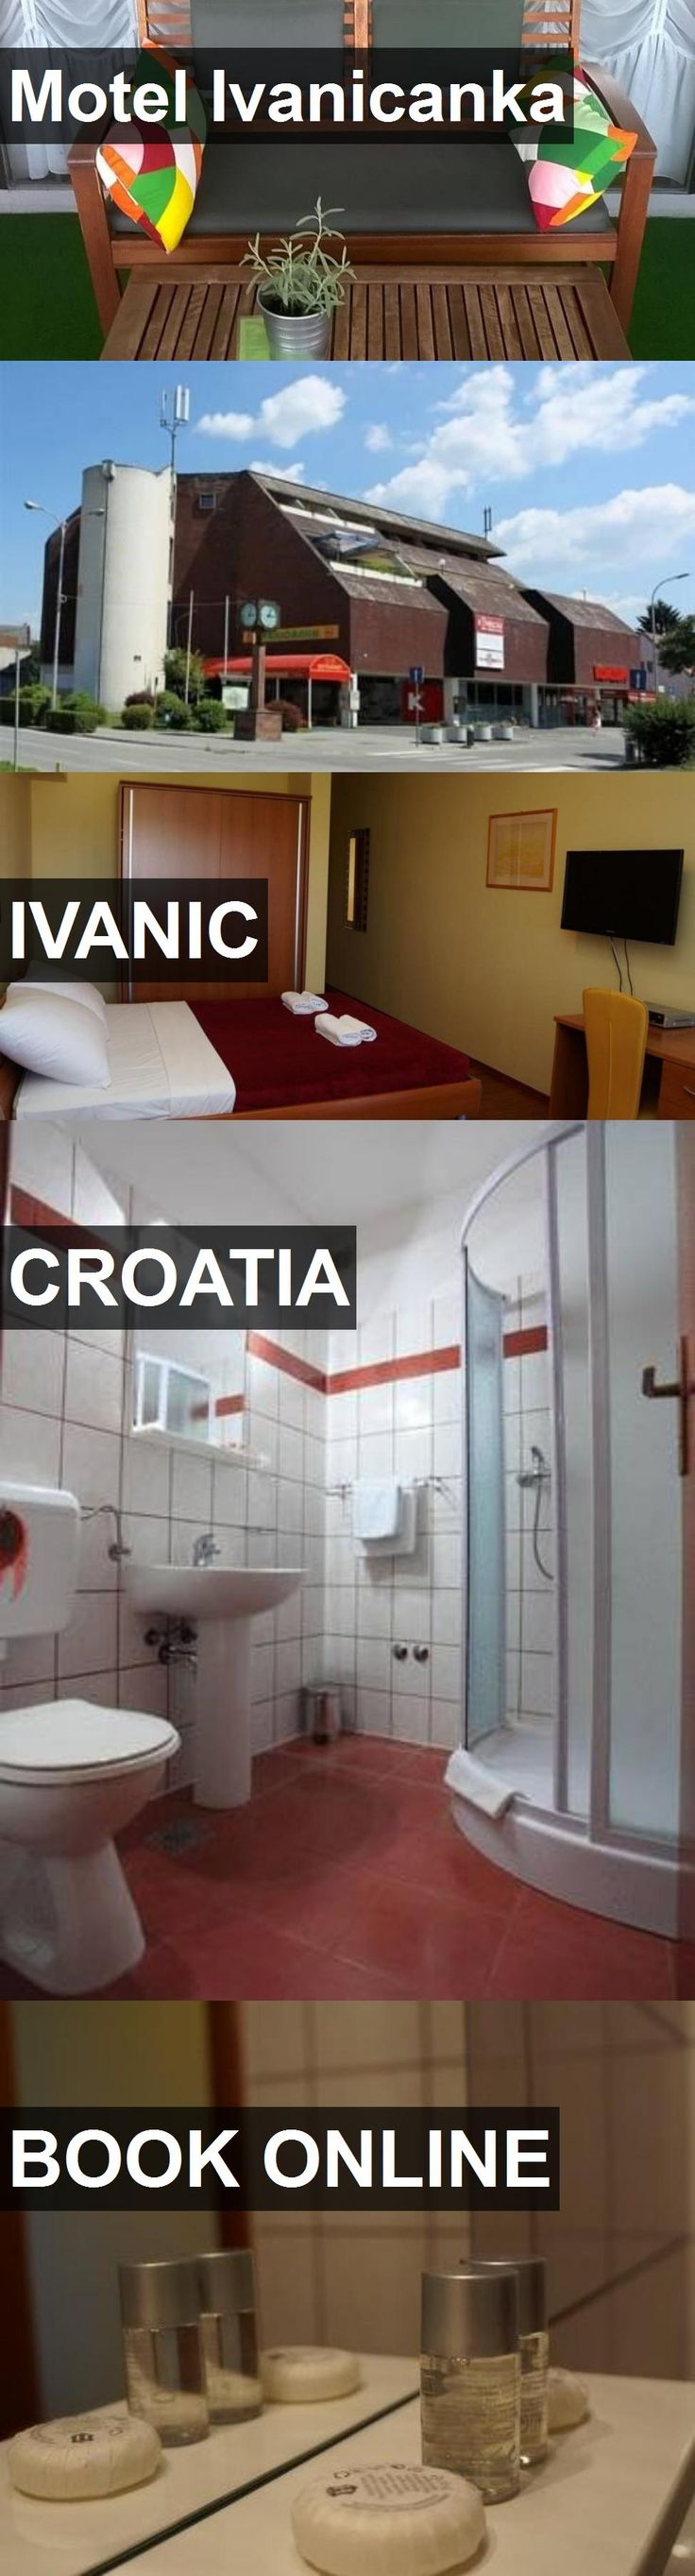 Hotel Motel Ivanicanka in Ivanic, Croatia. For more information, photos, reviews and best prices please follow the link. #Croatia #Ivanic #MotelIvanicanka #hotel #travel #vacation